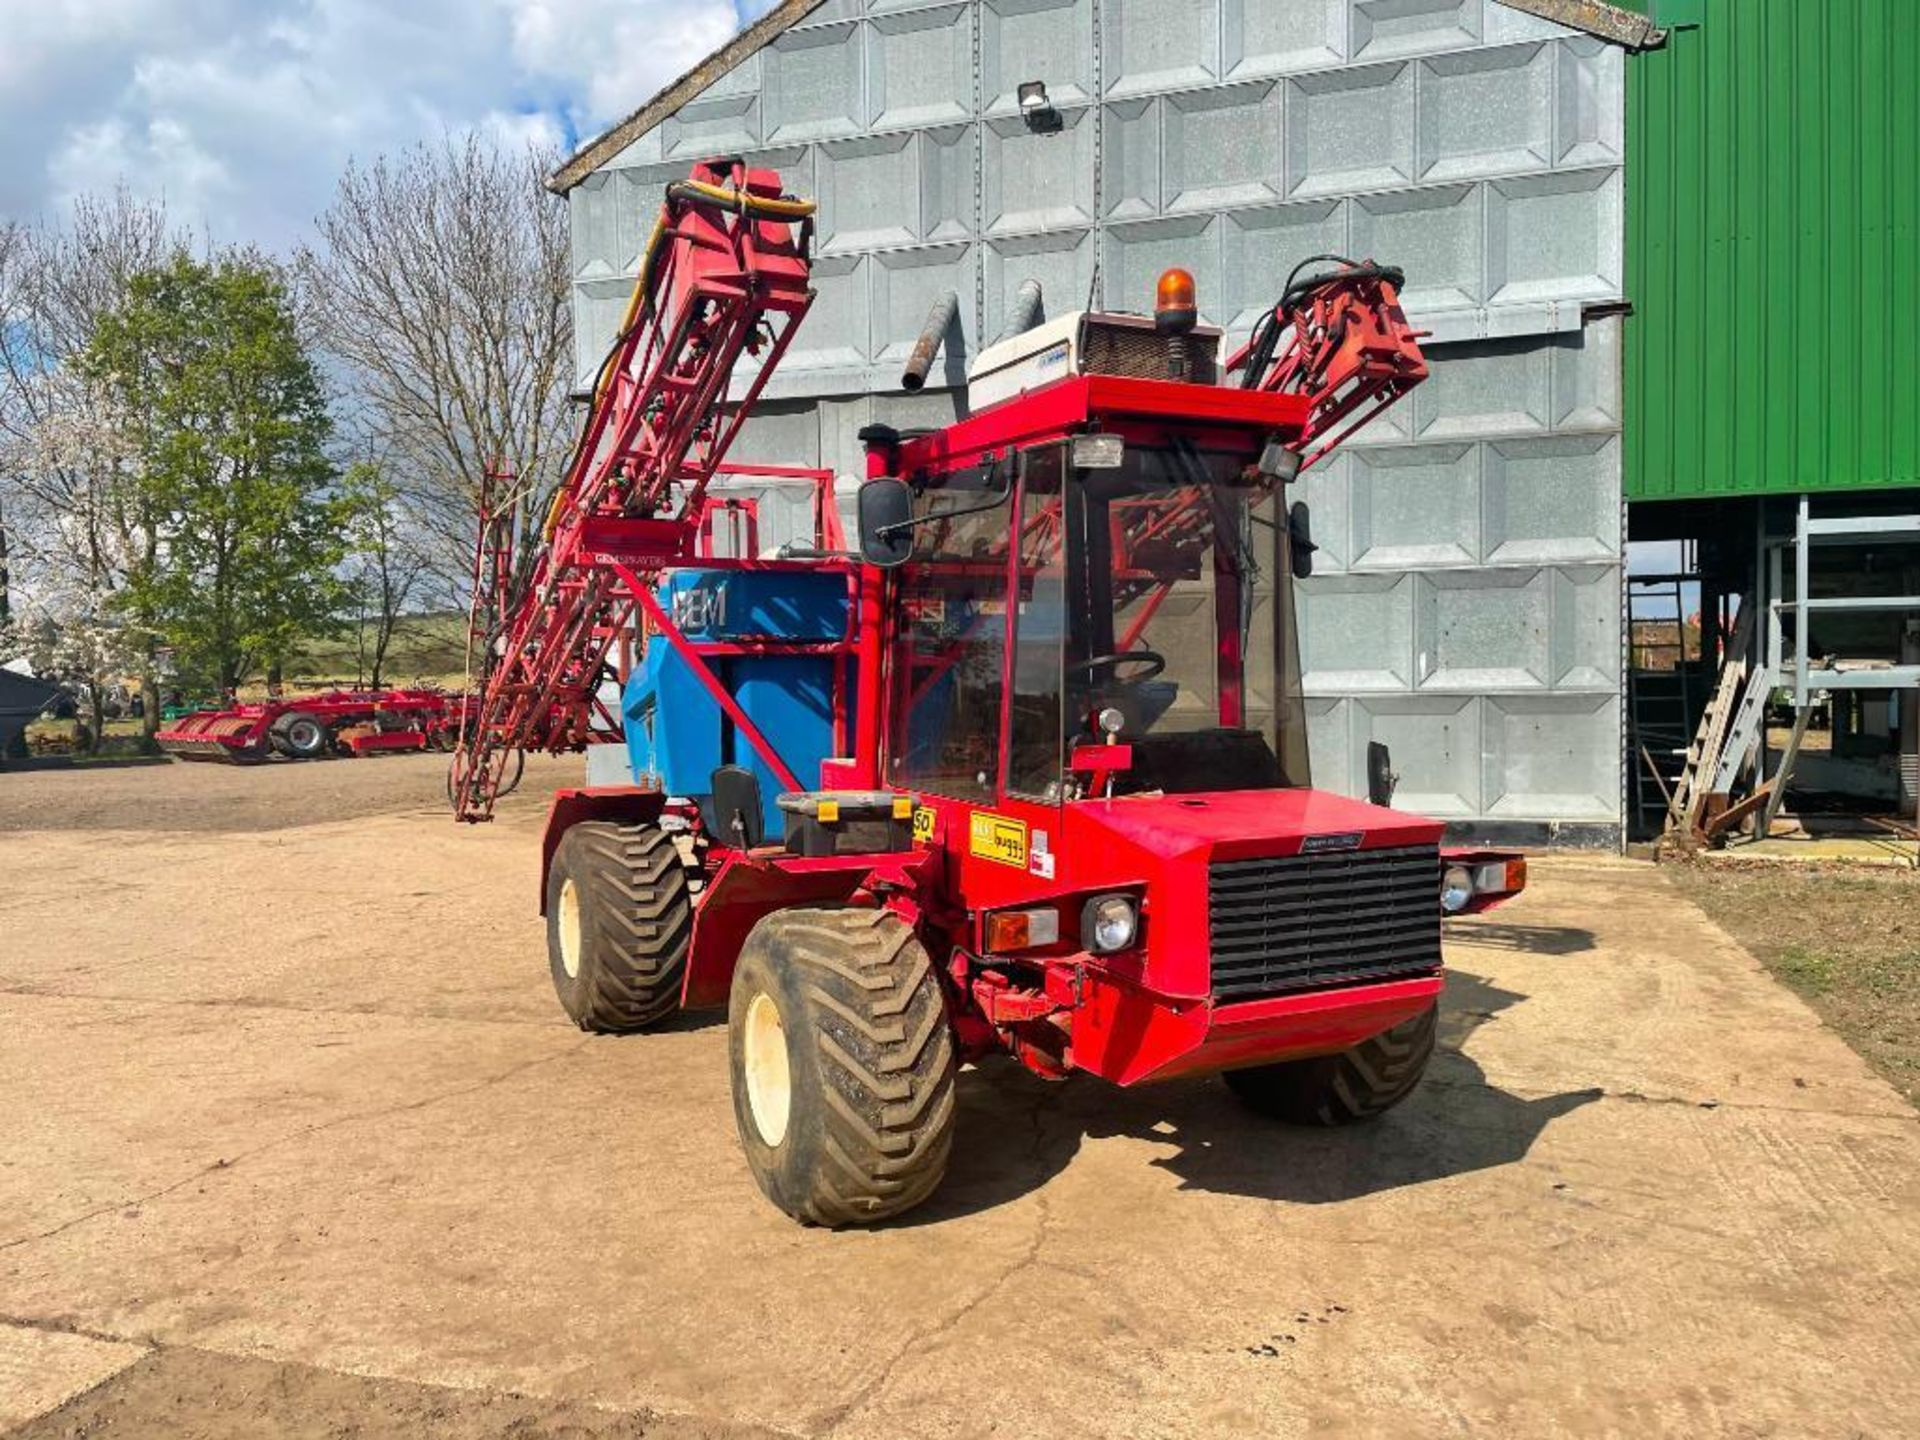 1995 Frazier Agri-Buggy SD with GEM 24m self propelled sprayer, 1500l tank on 38x20.00-16 wheels and - Image 10 of 27